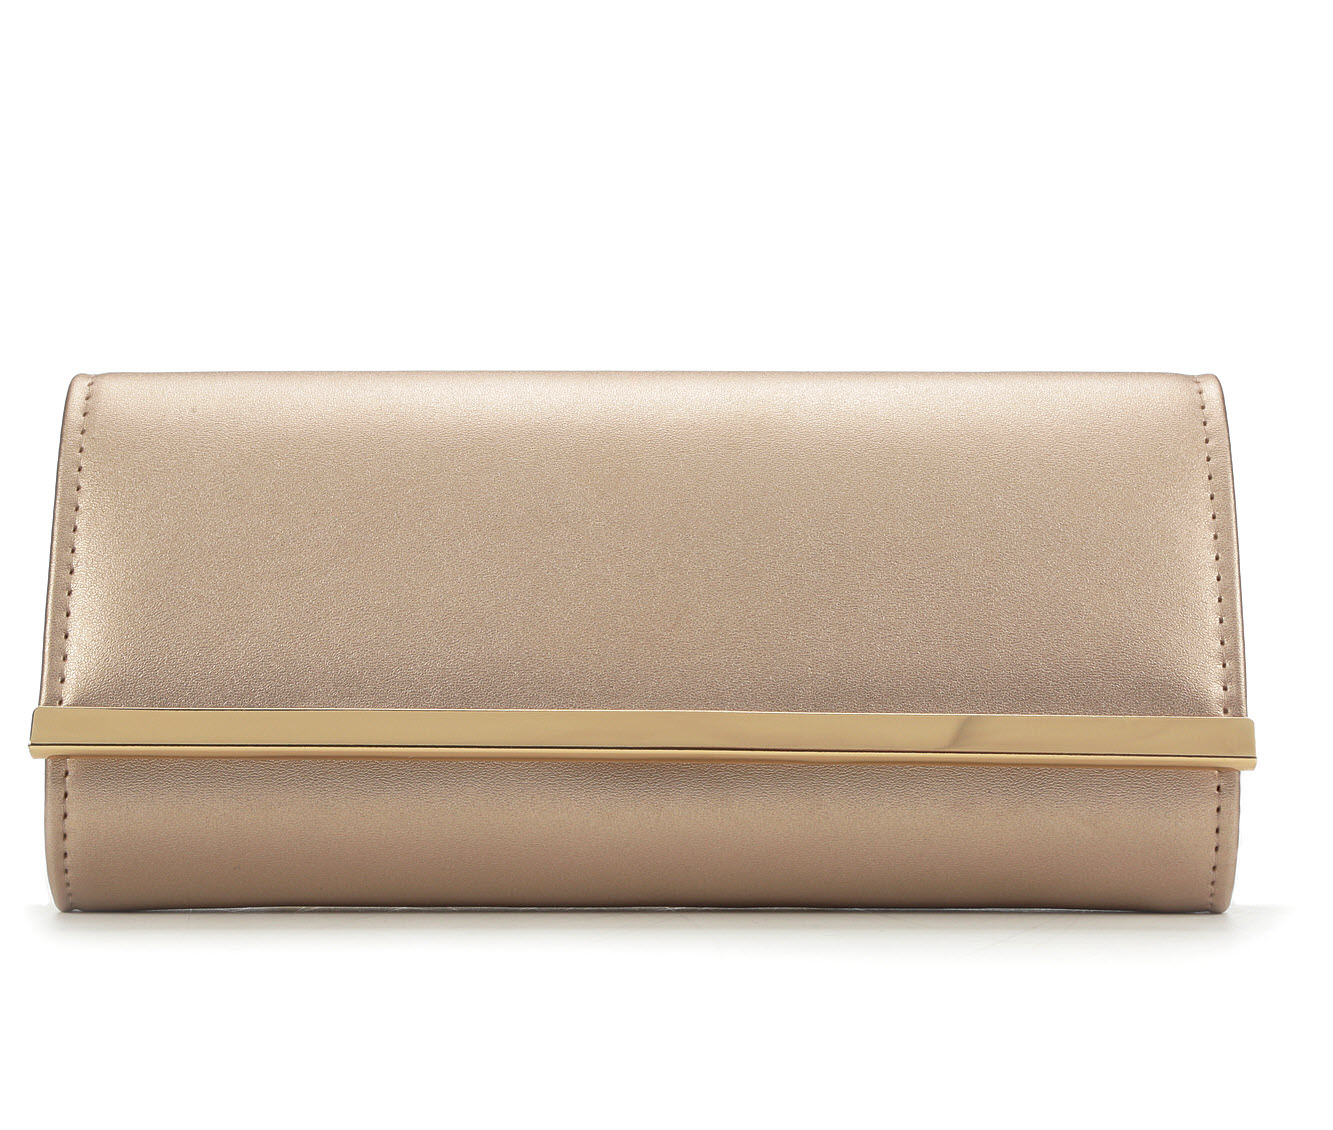 Four Seasons Handbags Faux Leather Evening Clutch (Pink)